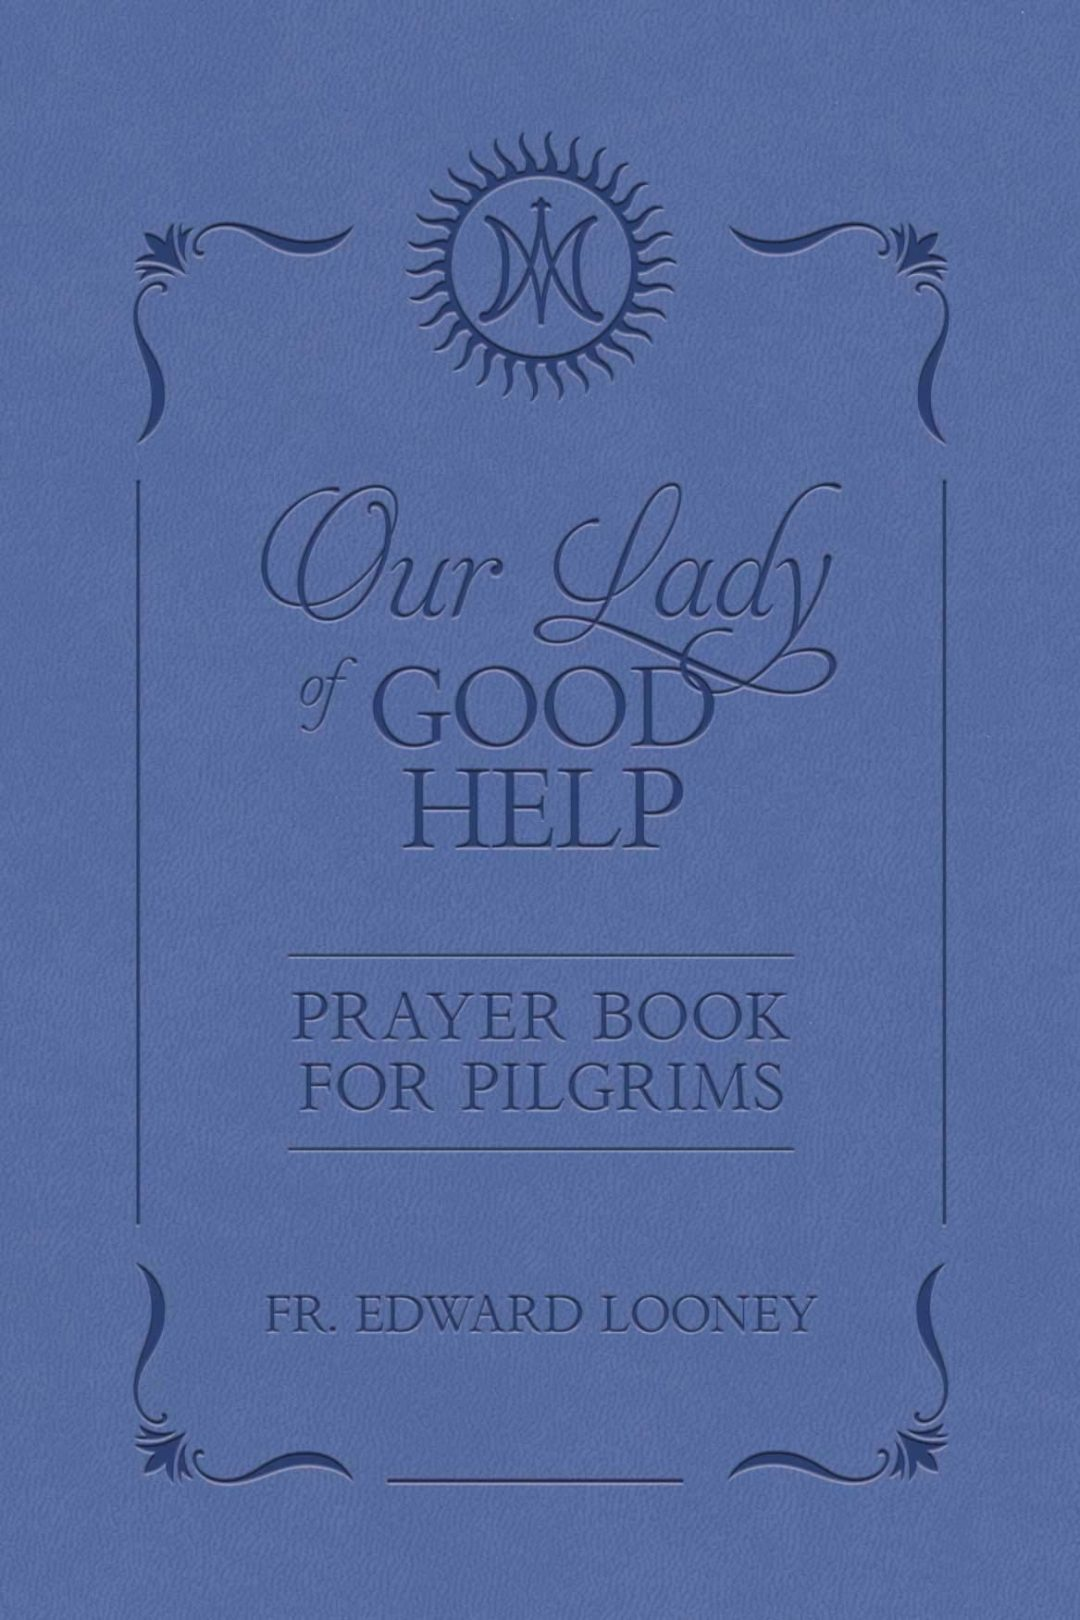 Our Lady of Good Help: A Prayer Book for Pilgrims